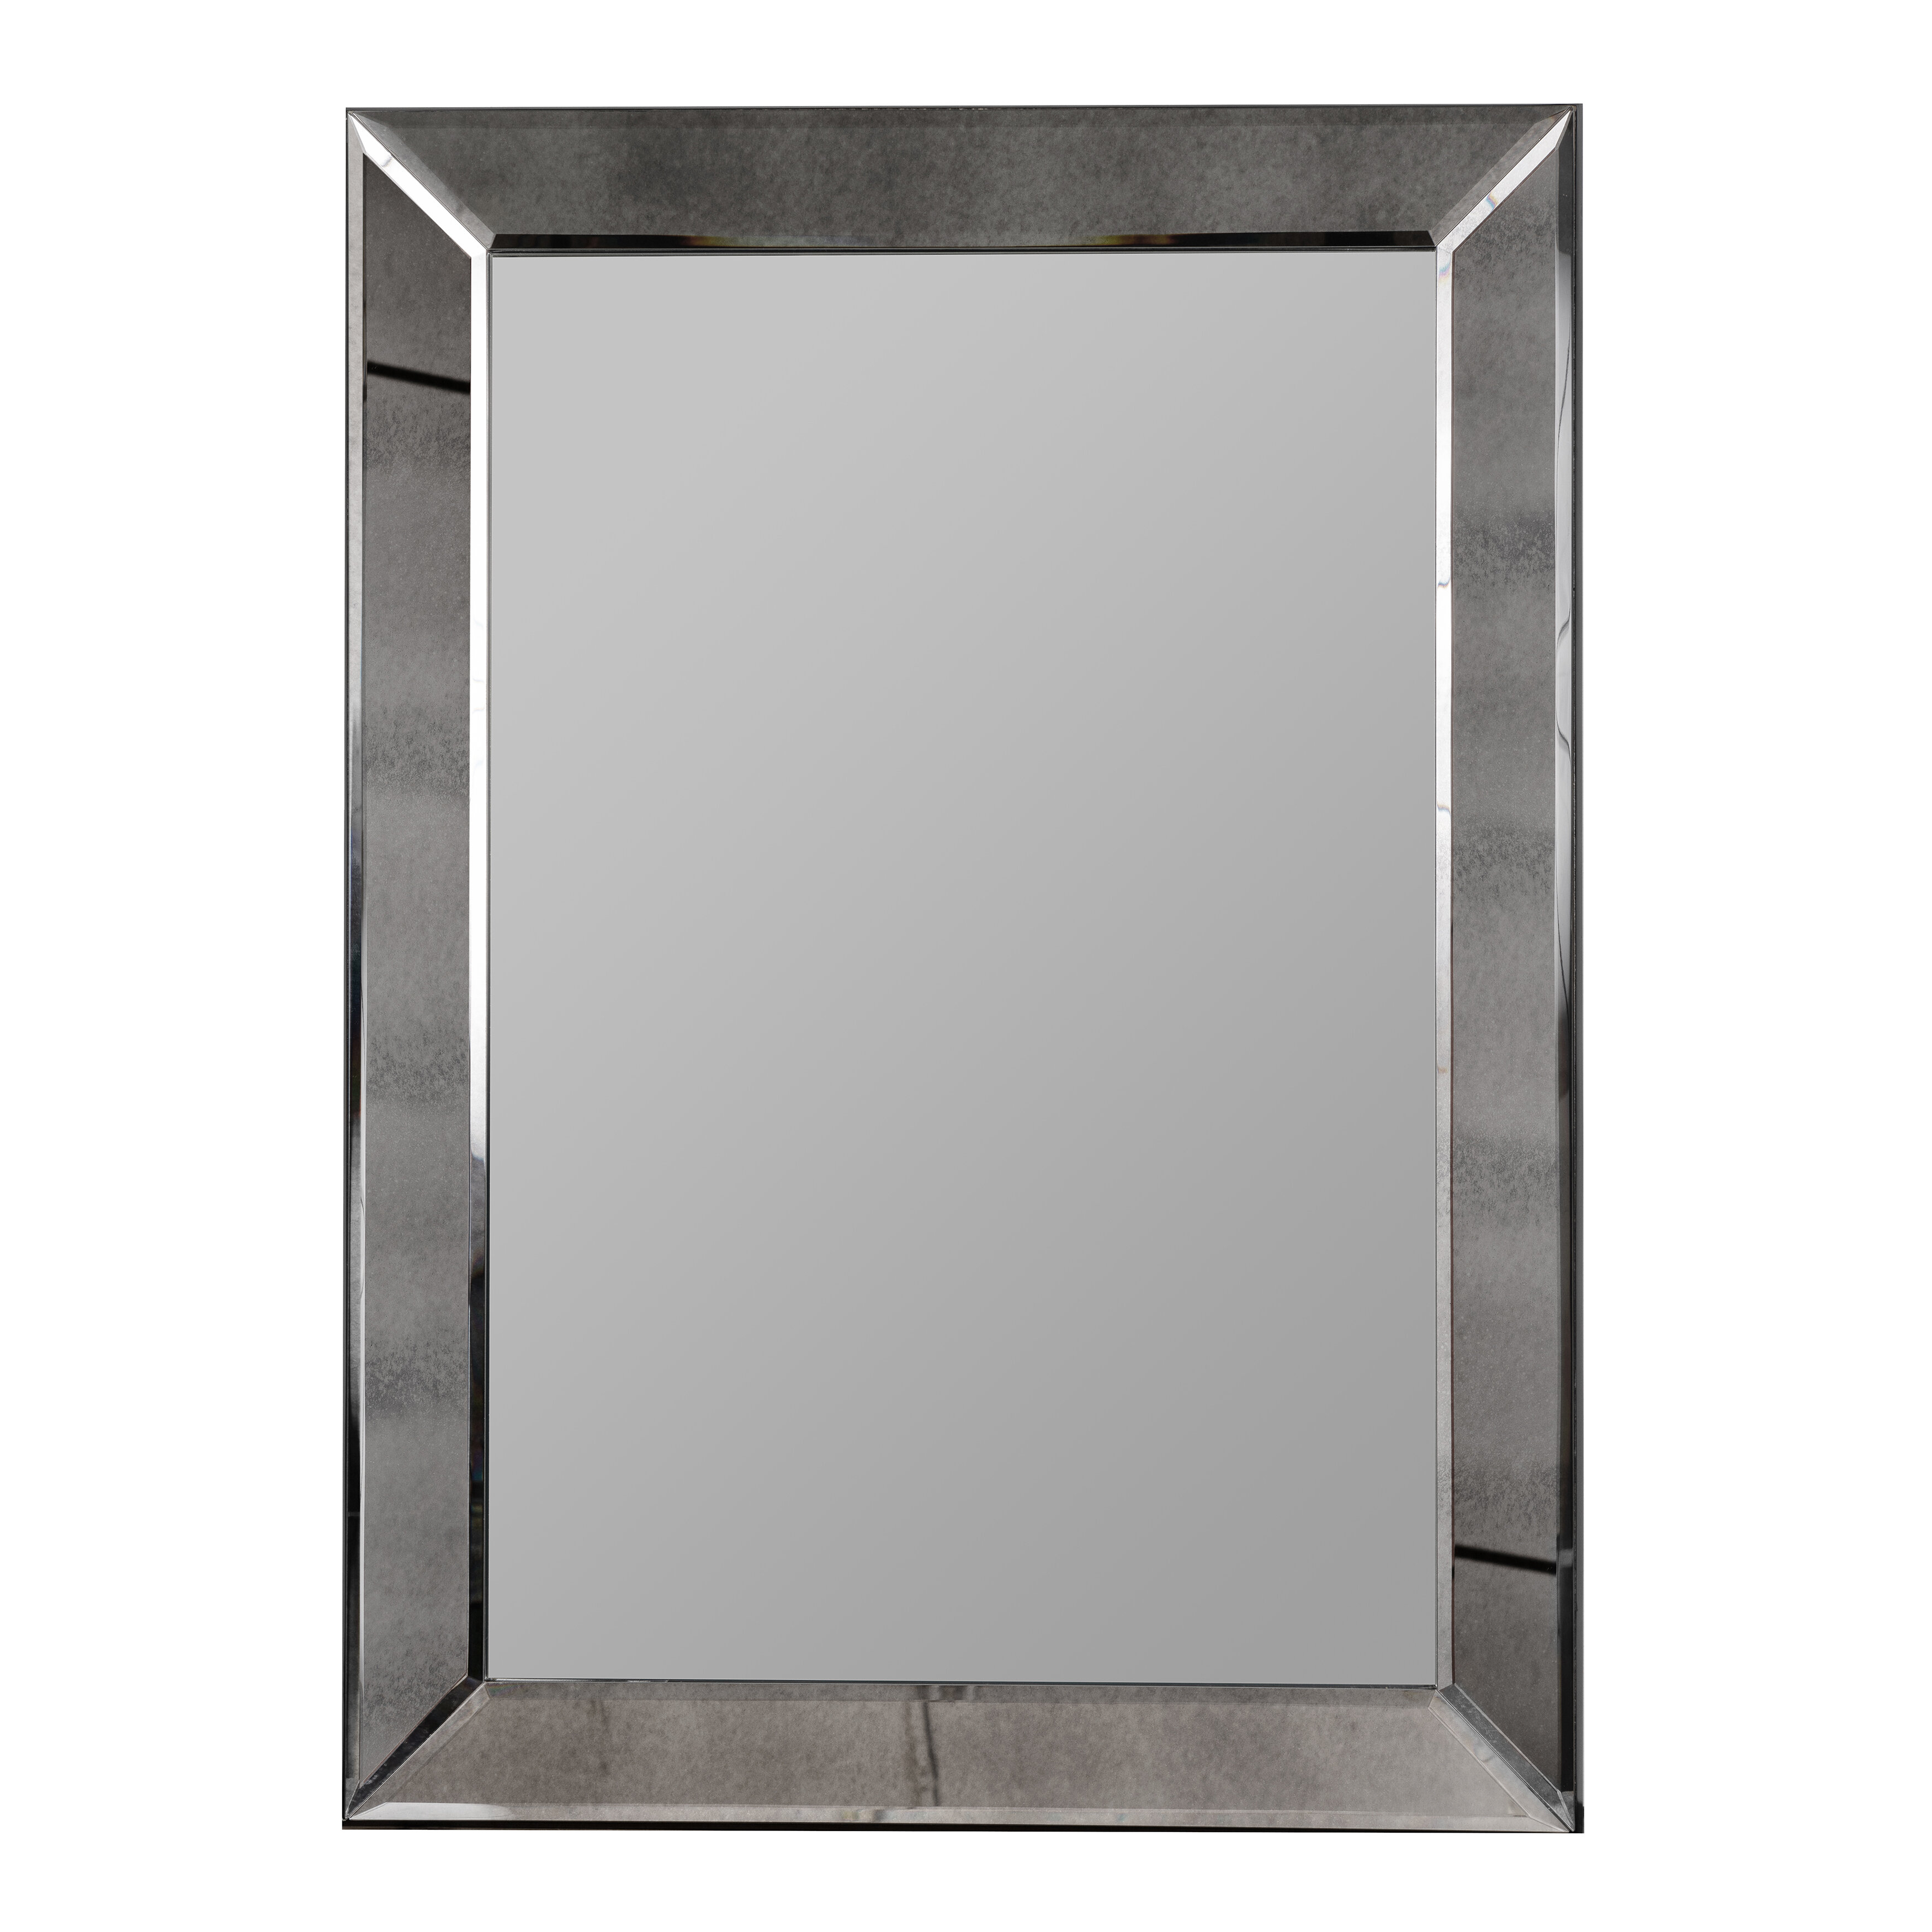 Framed Wall & Accent Mirrors | Allmodern inside Marion Wall Mirrors (Image 11 of 30)